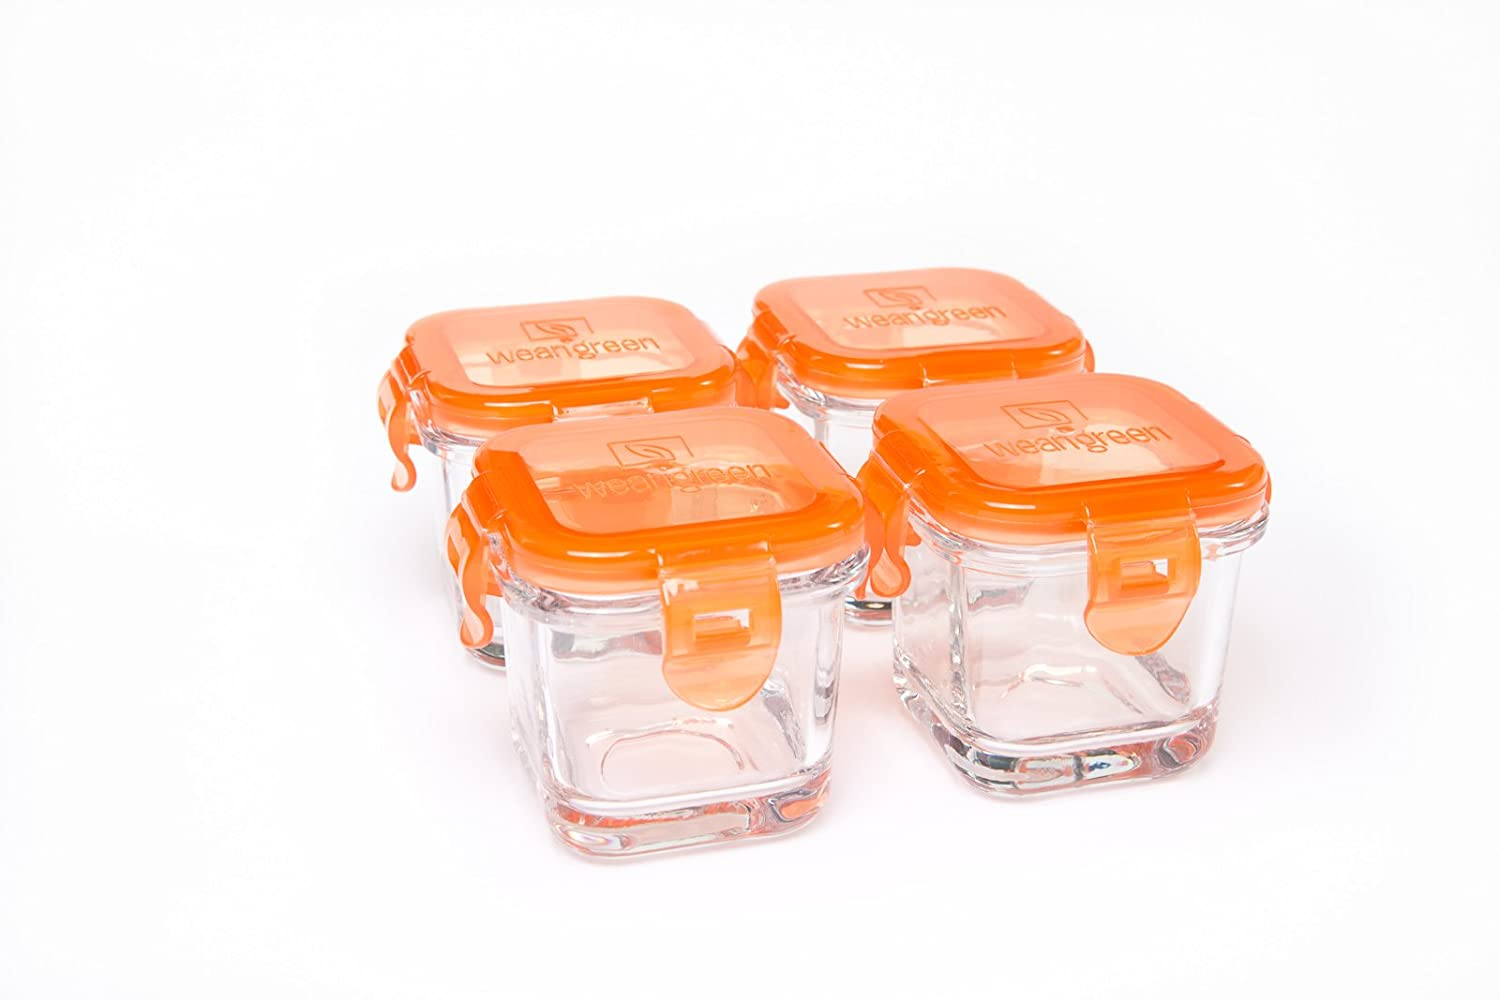 Amazon.com : Wean Green Glass Baby Food Containers (Set Of 4) (Multi Color)  : Baby Food Storage Containers : Baby